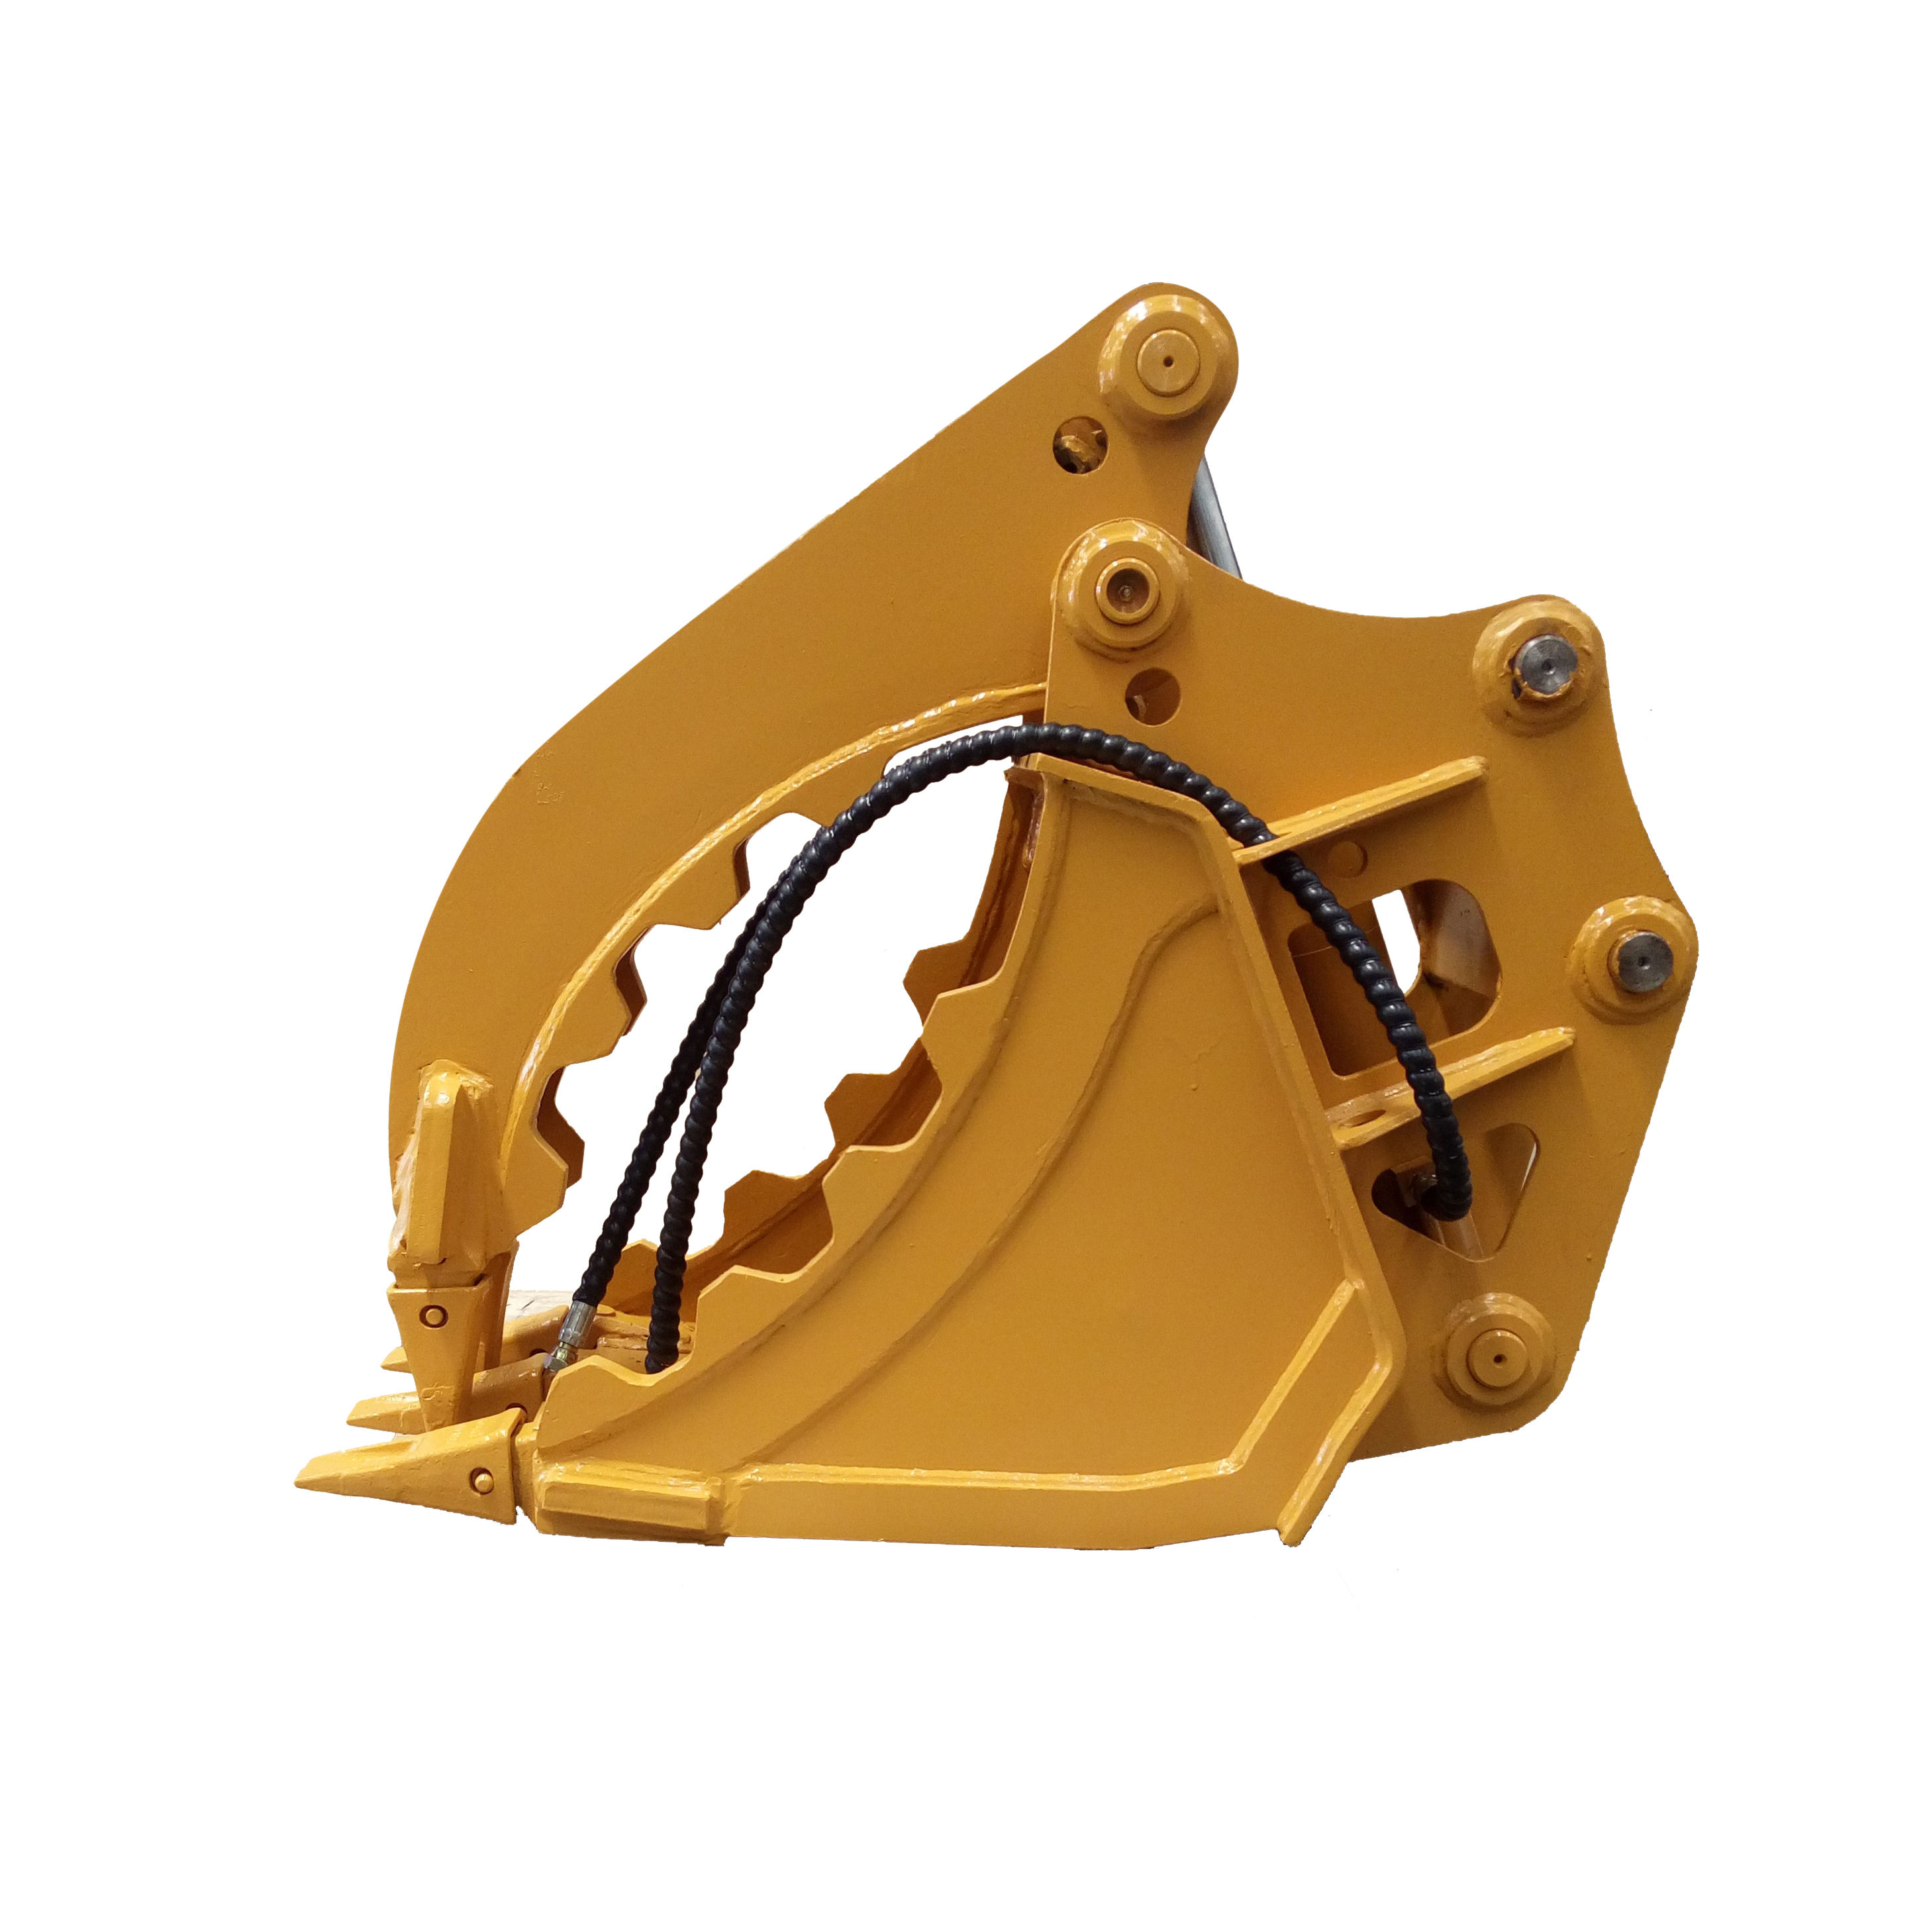 Excavator attachments clamshell grab buckets